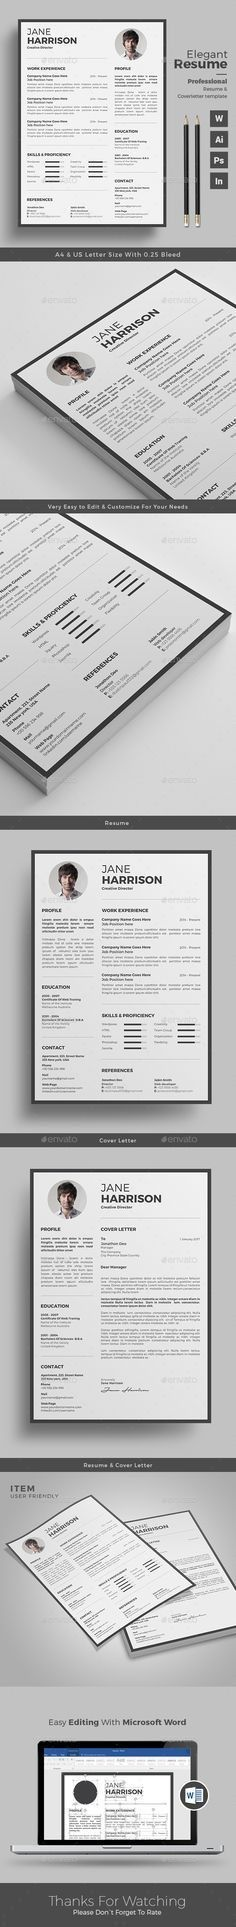 Resume | Stationery templates, Fonts and Cv design